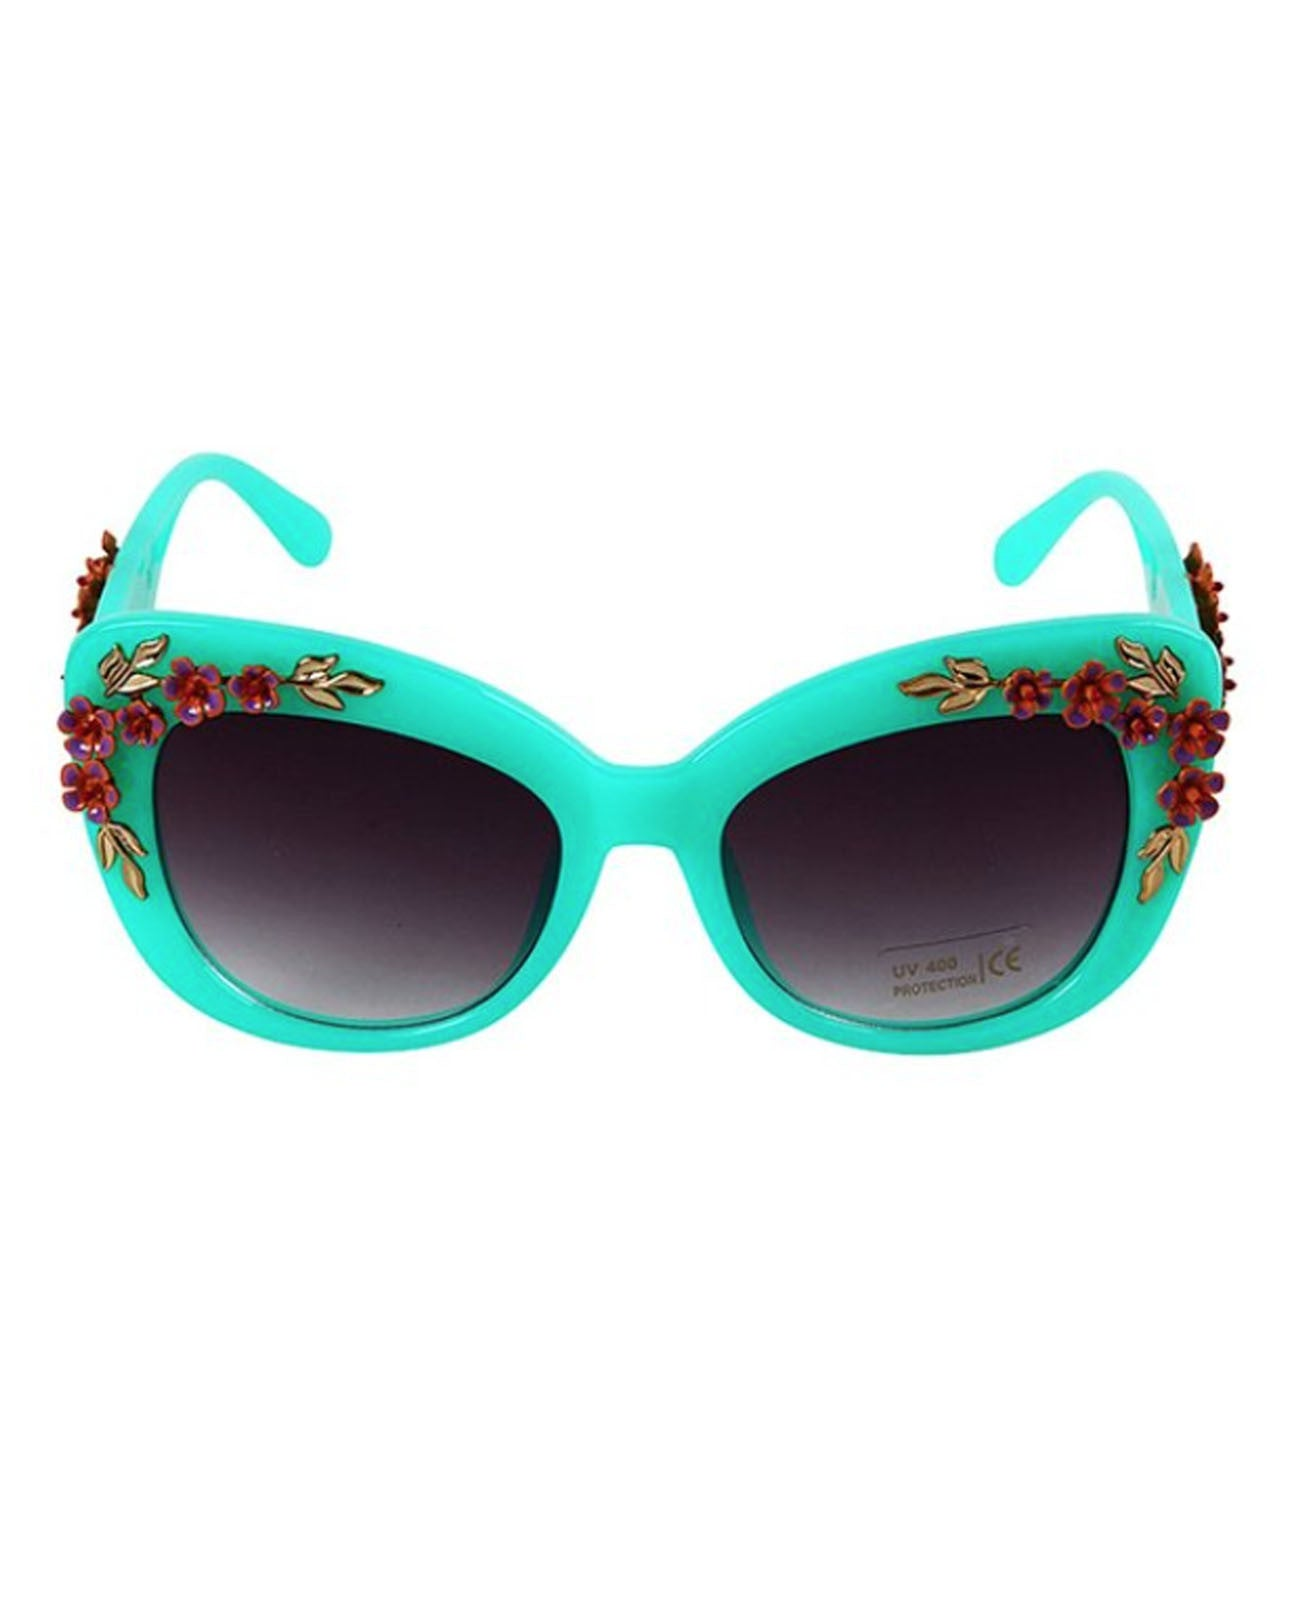 Turquoise Flower Power Rockstar Shades